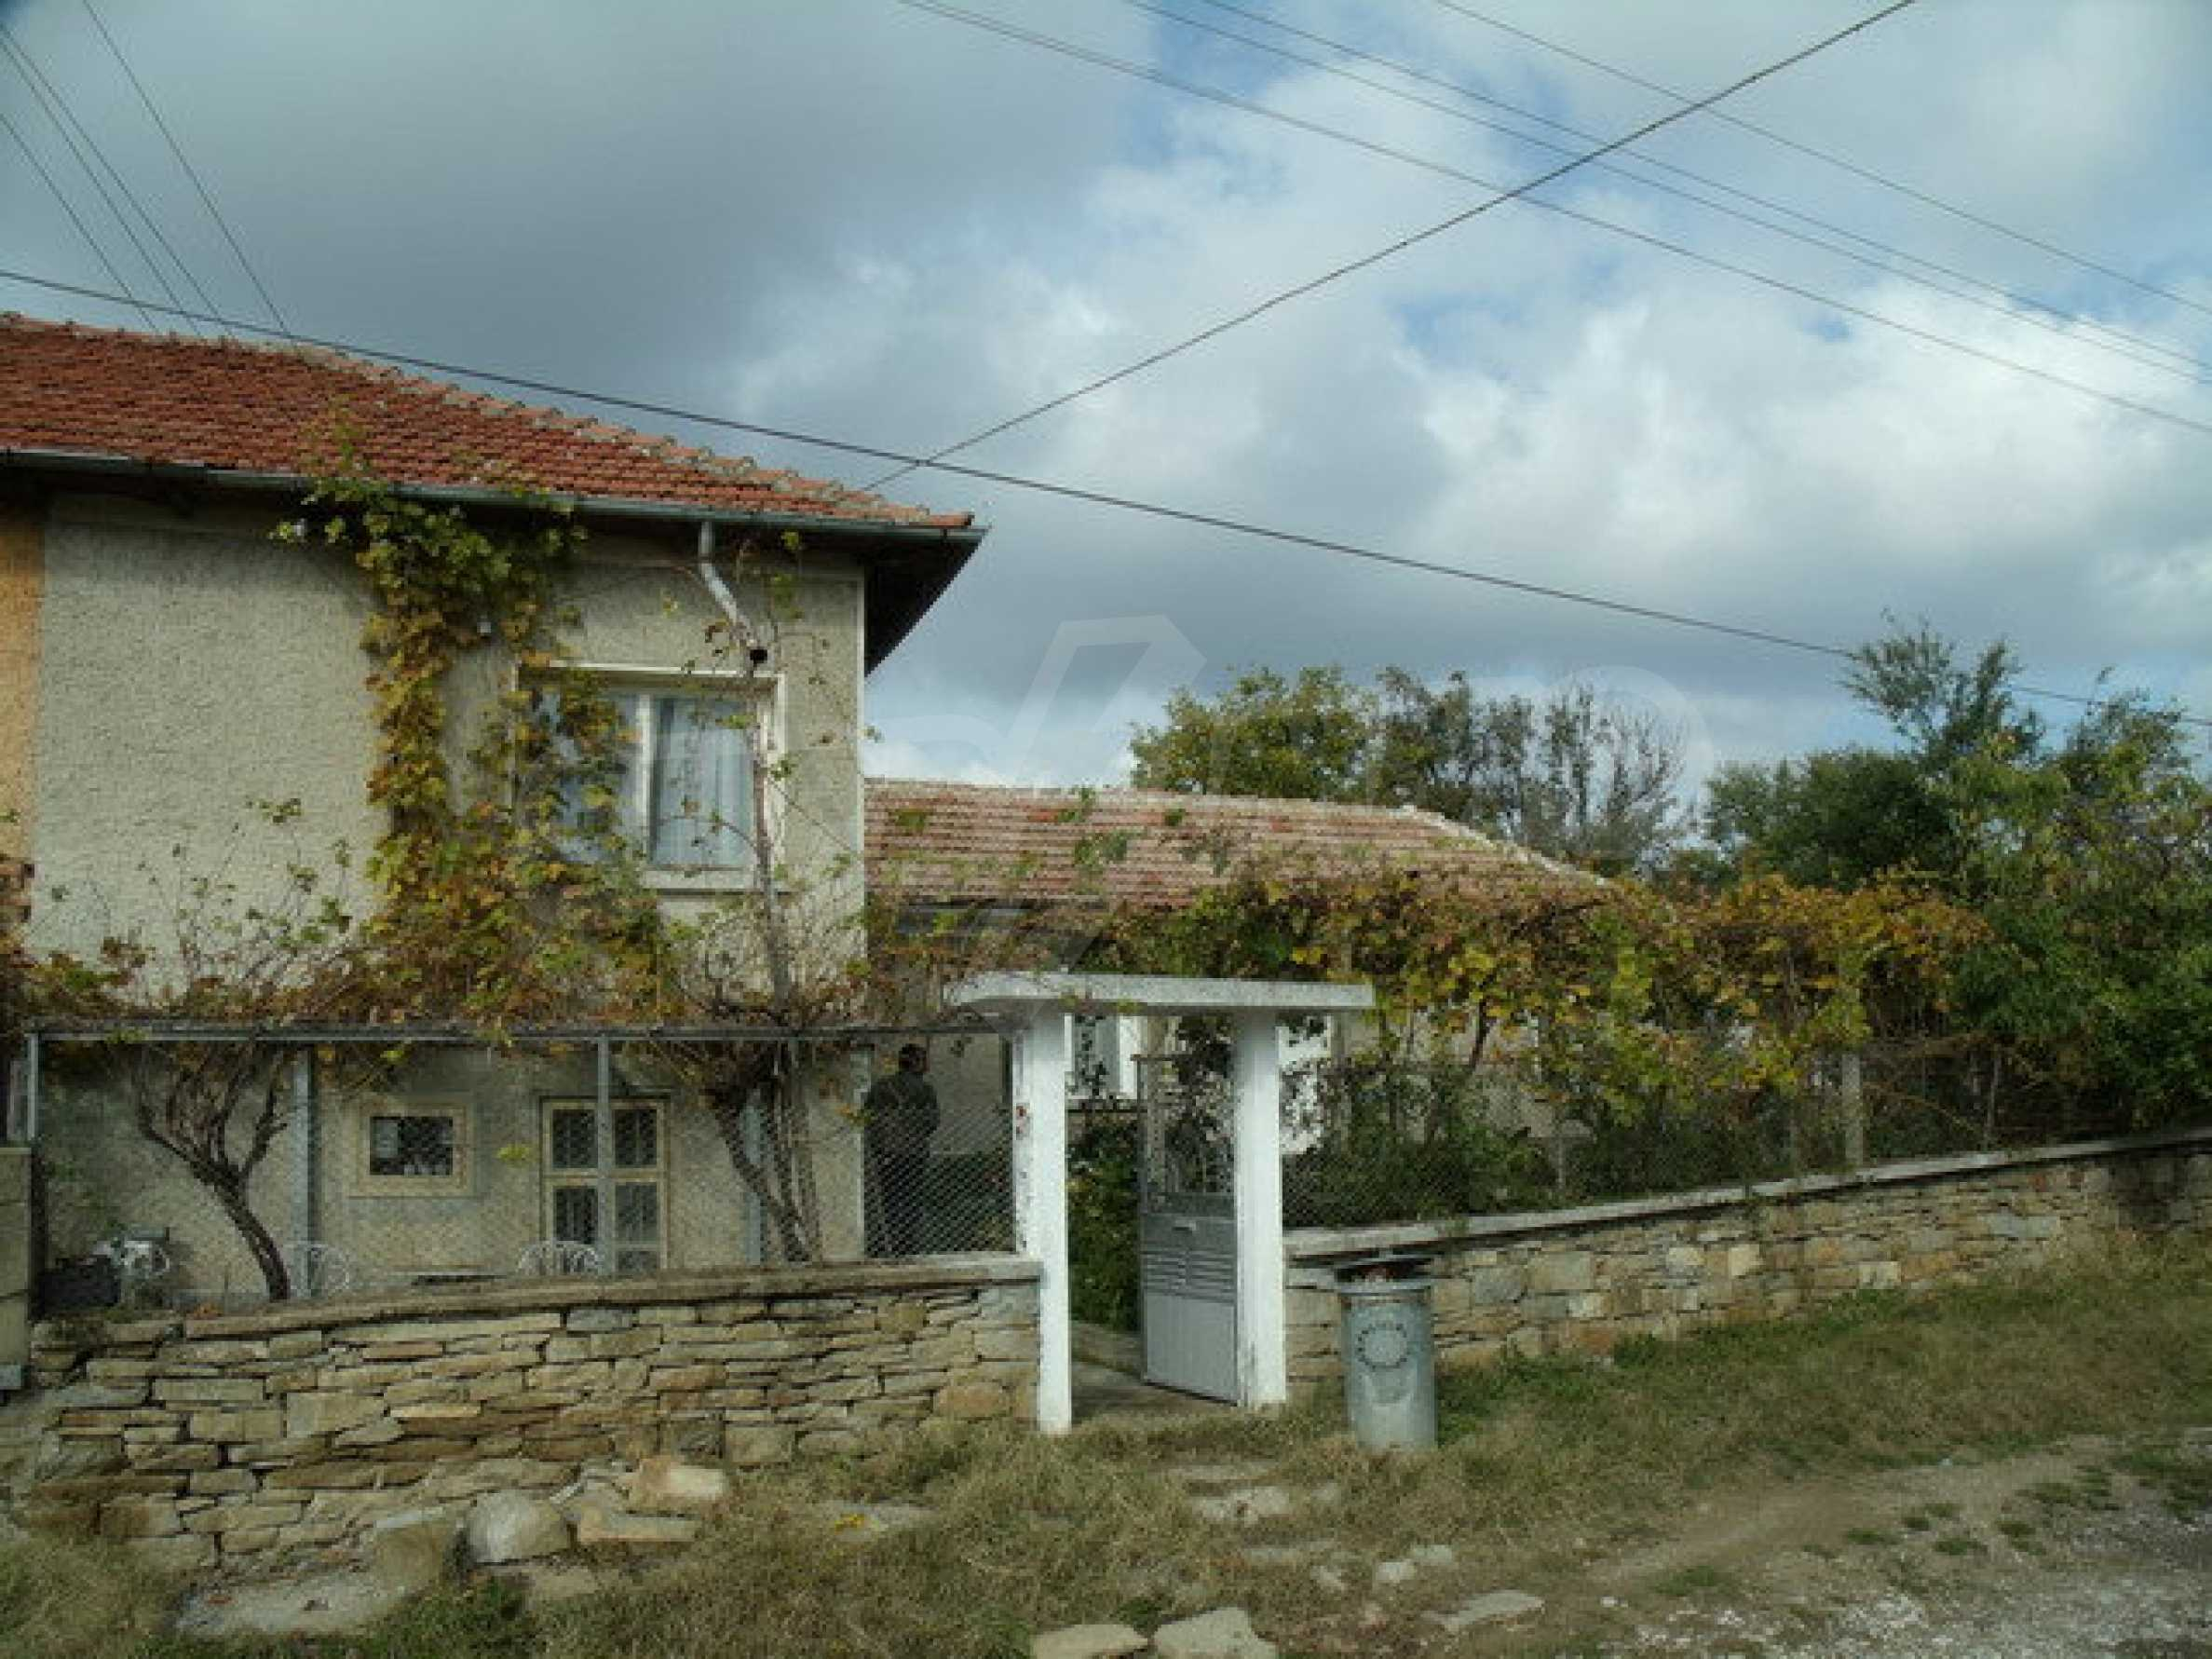 House in a small town, 15 km. from the old capital of Veliko Tarnovo